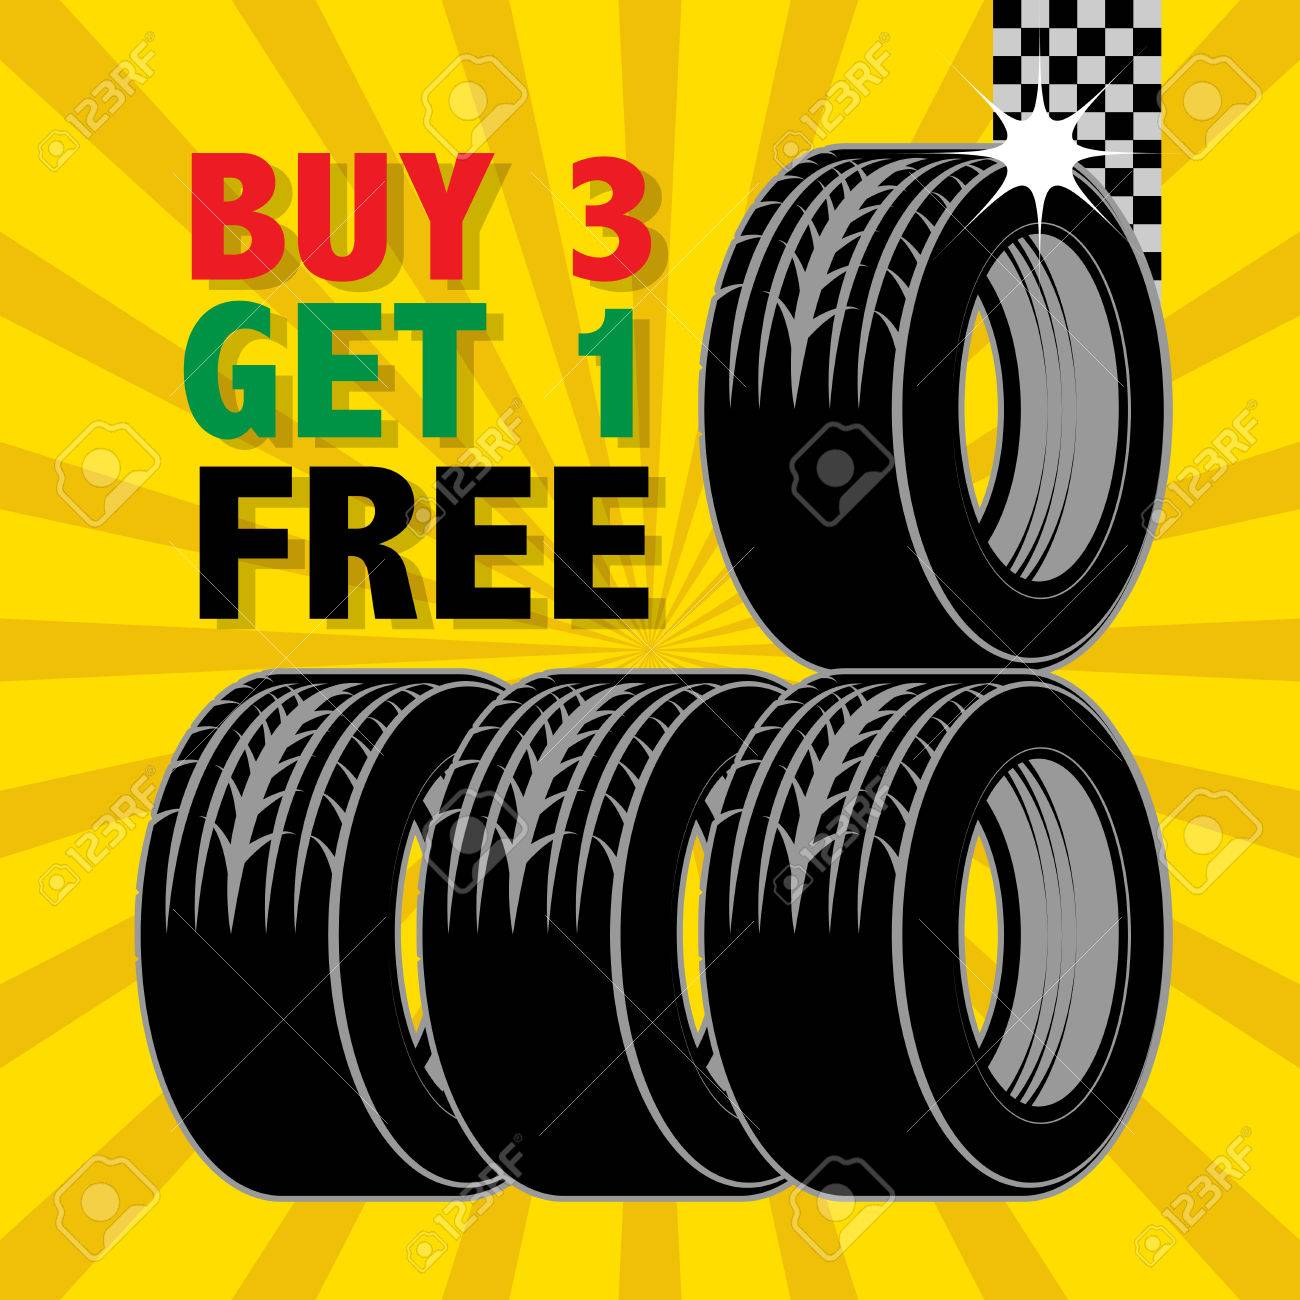 Abstract Label With Tires And The Text Buy 3 Get 1 Free Written